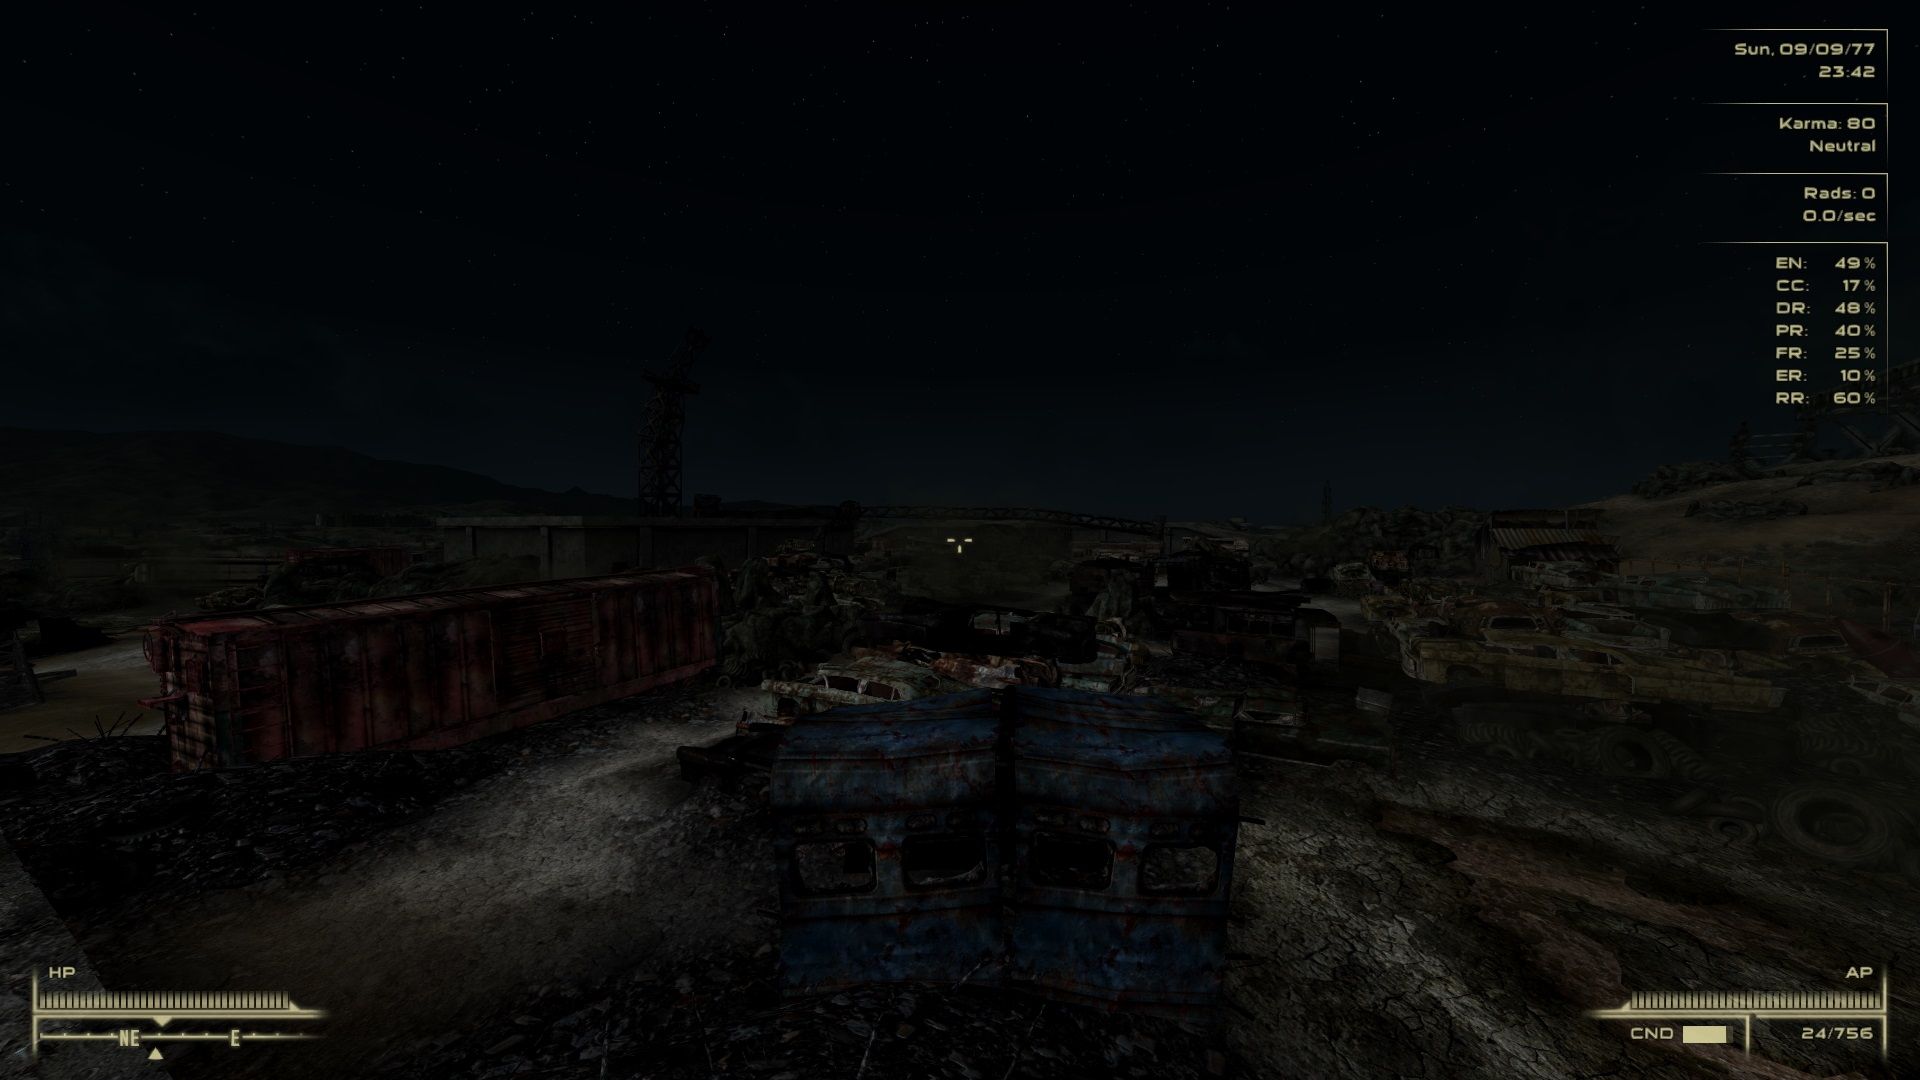 Moonlight over Scrapyard